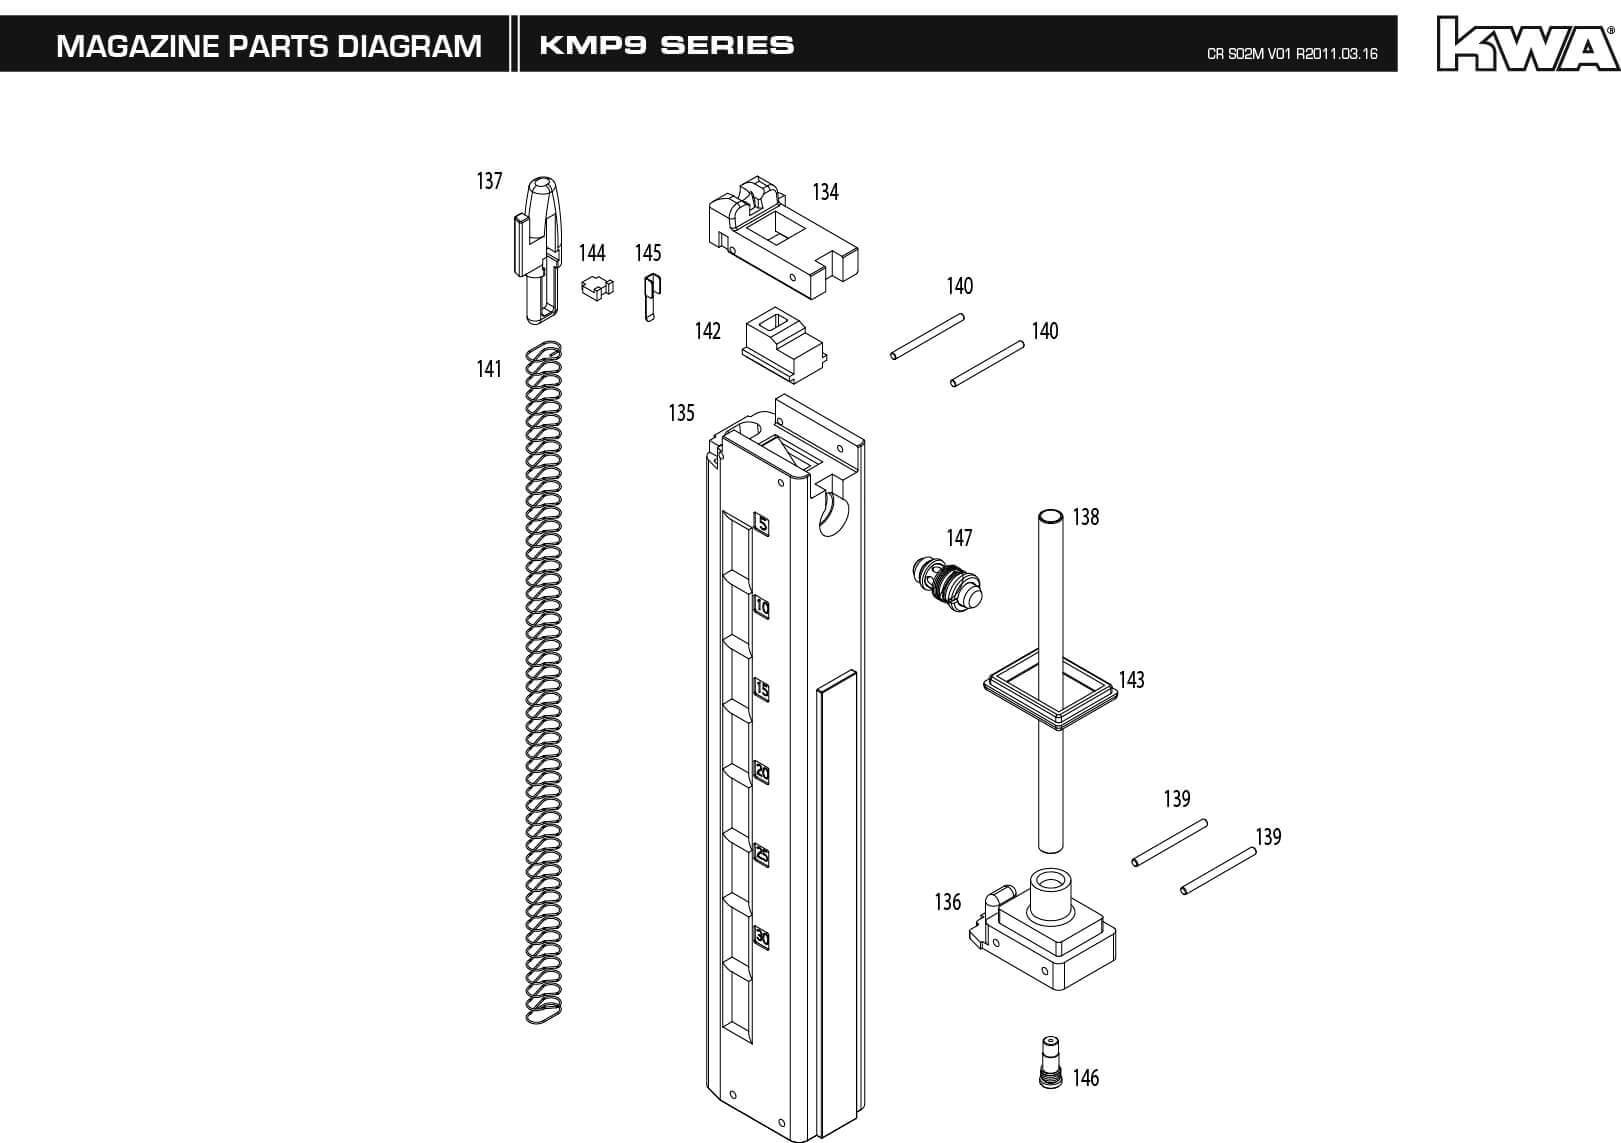 hight resolution of m p 9 parts diagram wiring diagram for you hk p2000 parts diagram downloads kwa airsoft smith